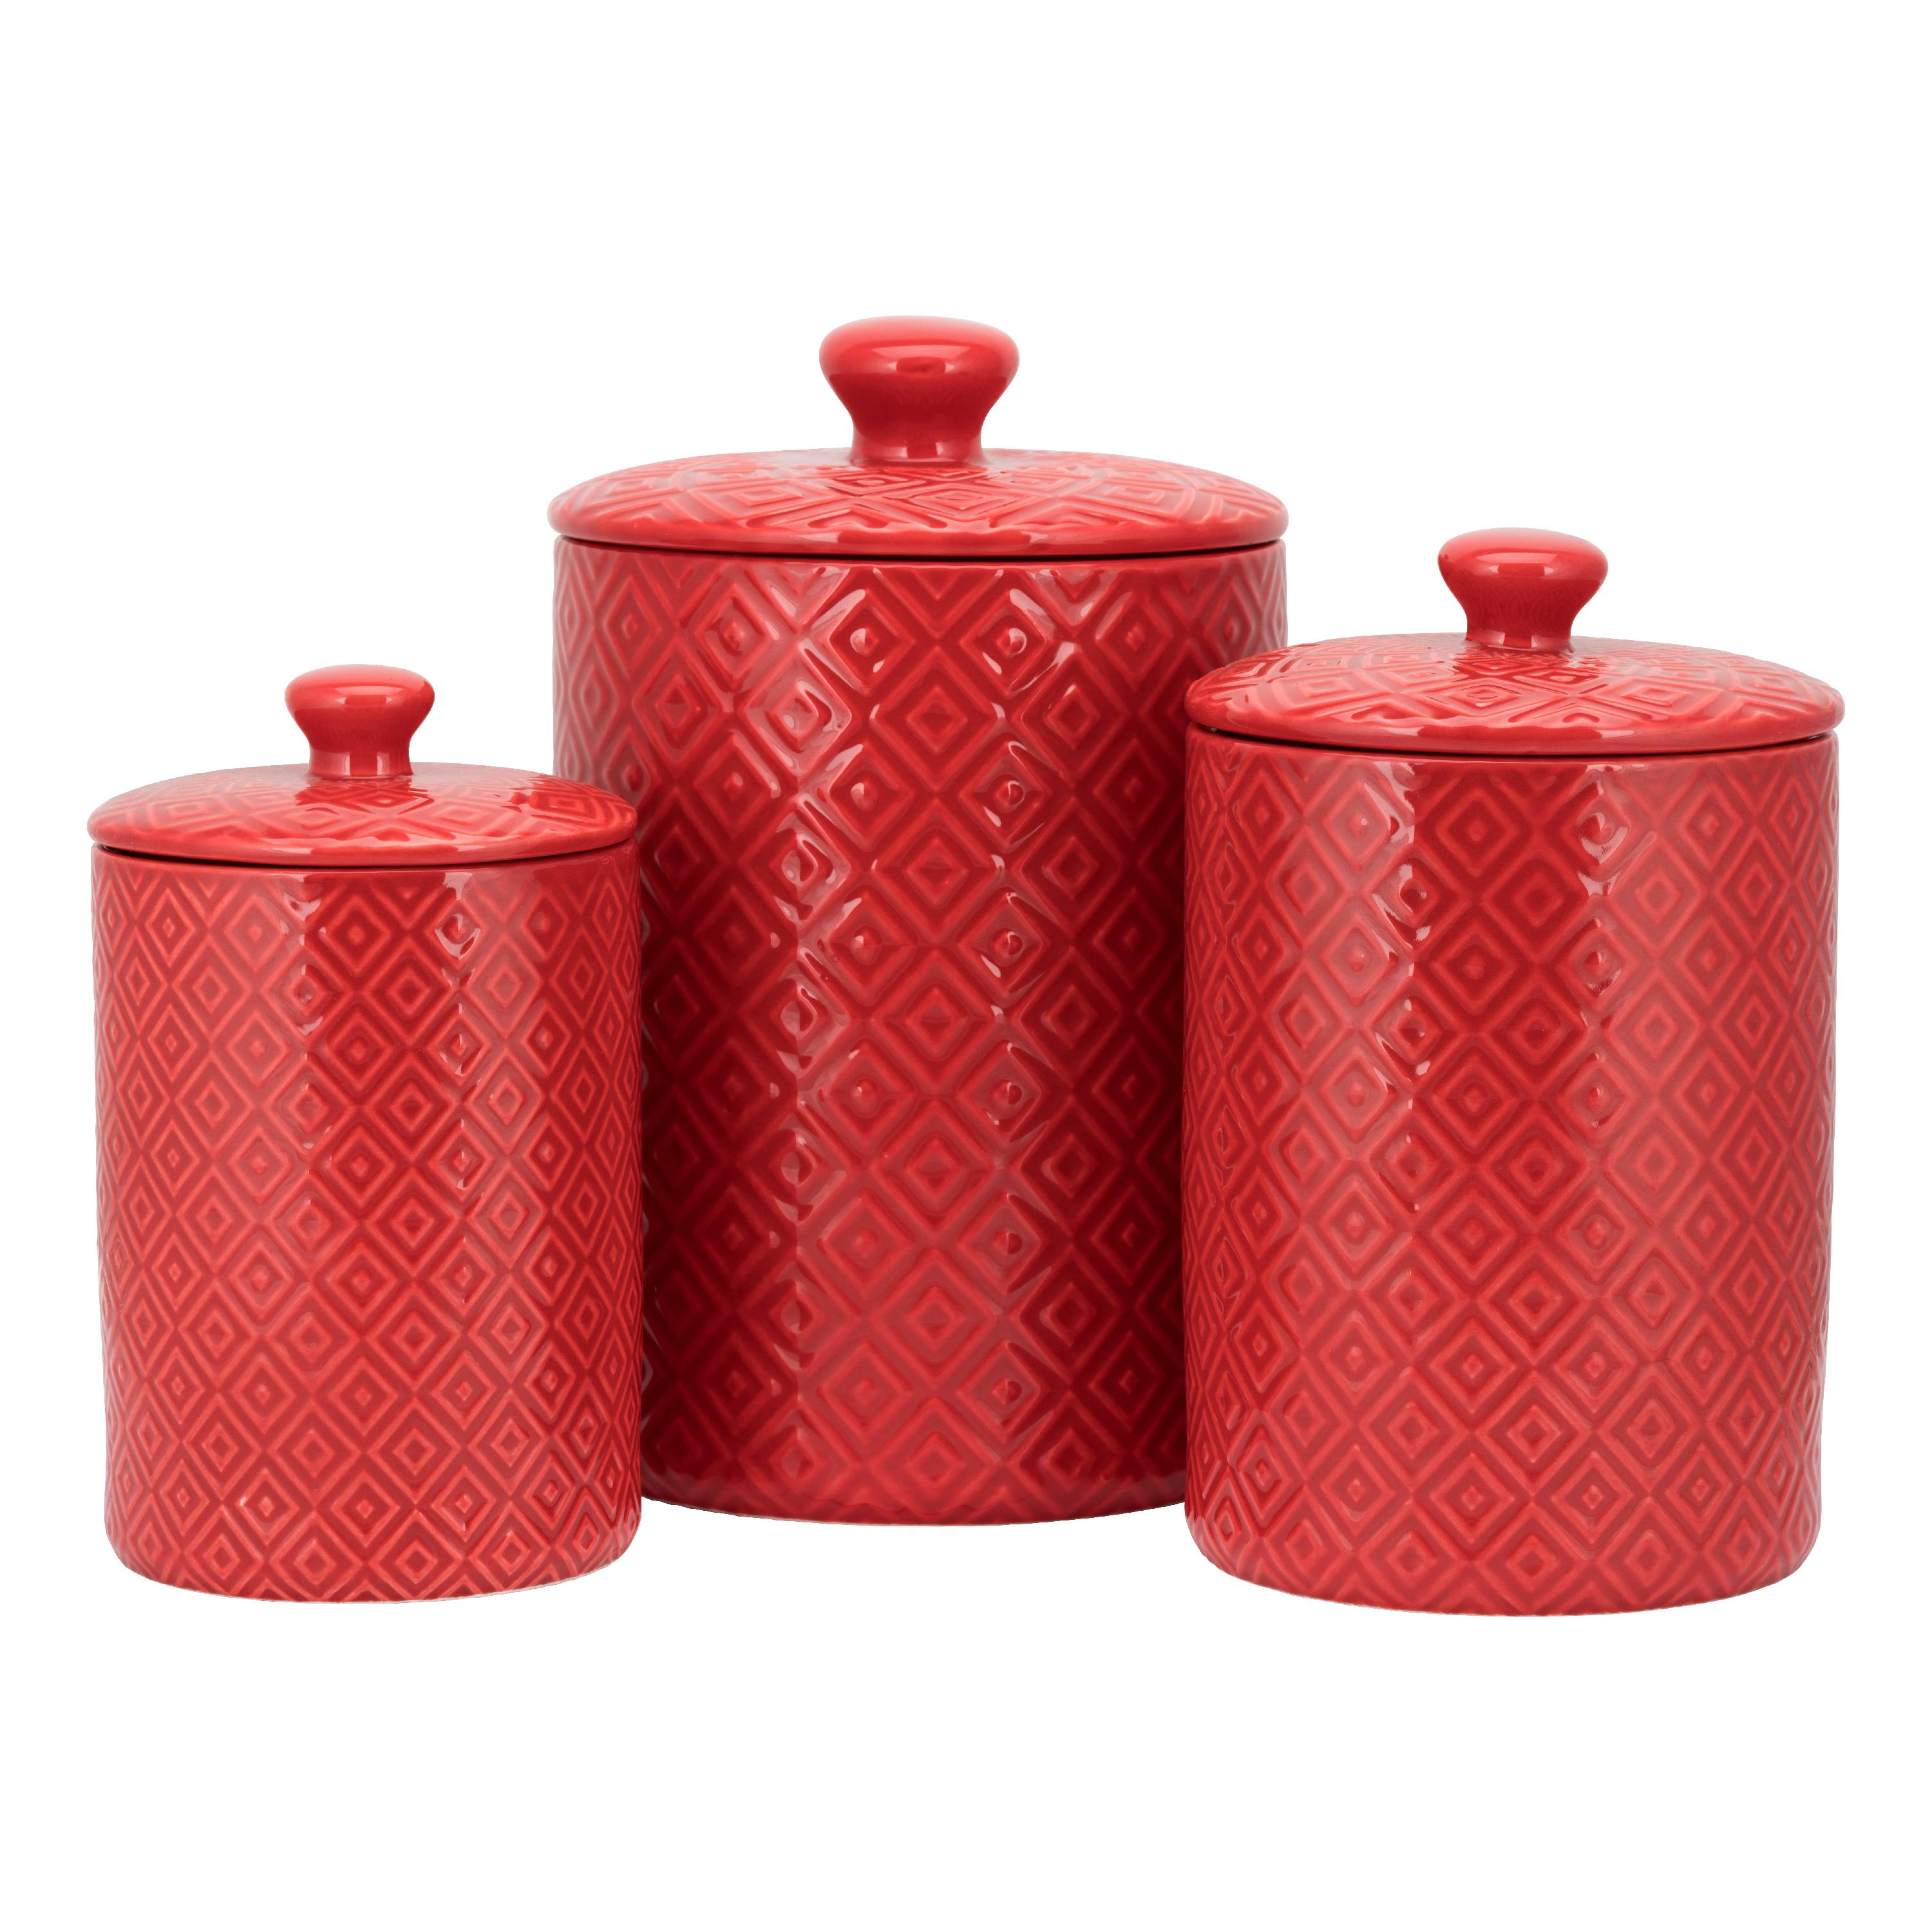 10 Strawberry Street Diamond 3 Piece Canister Set, Red